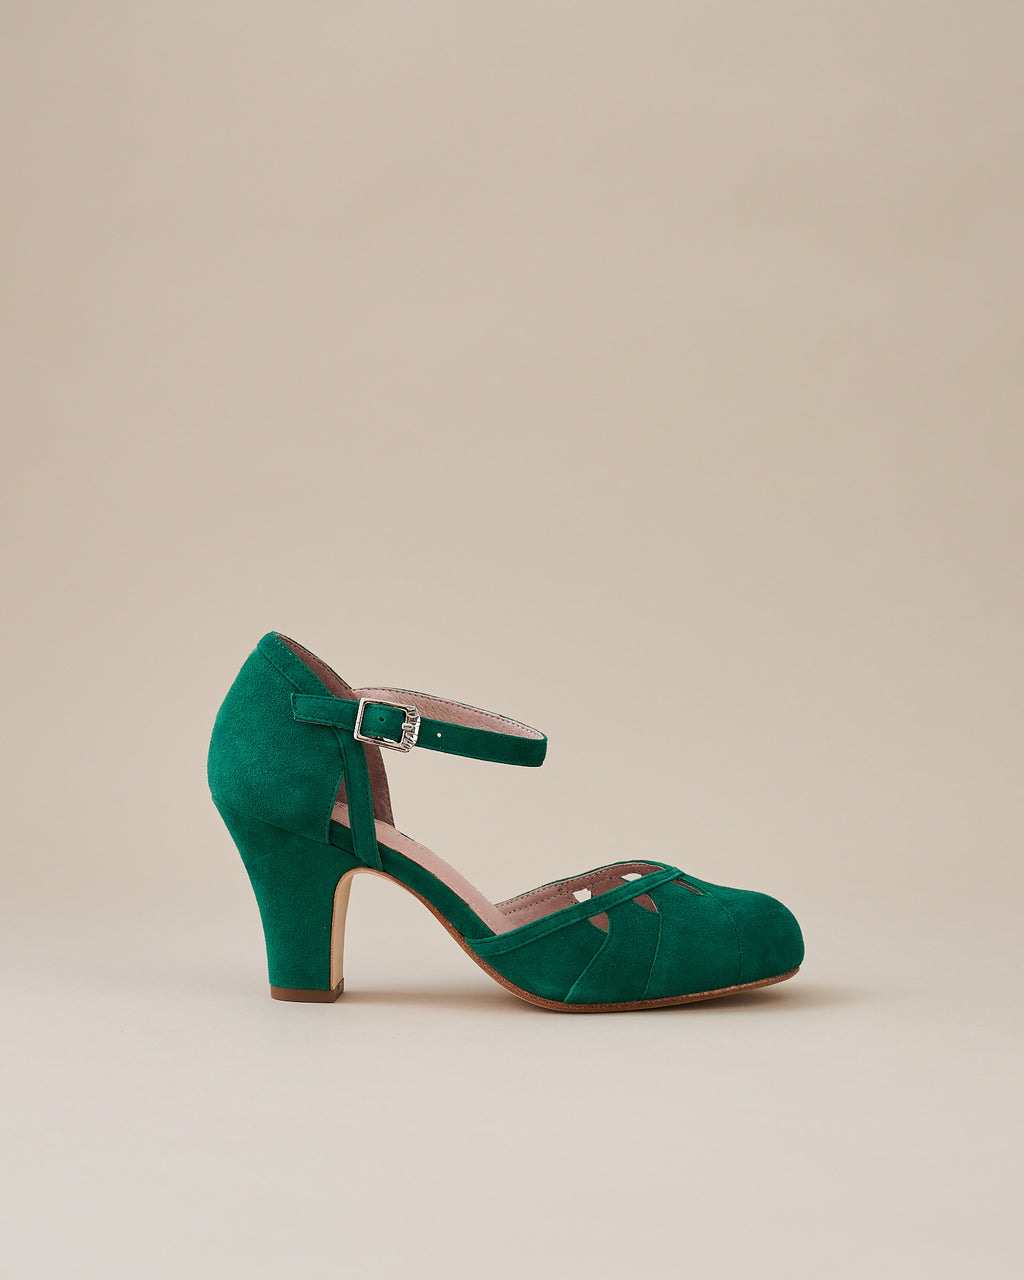 Lucie Kelly Green Suede Two Part Panelled Bar Heel- LAST PAIRS SIZES 39 & 40!